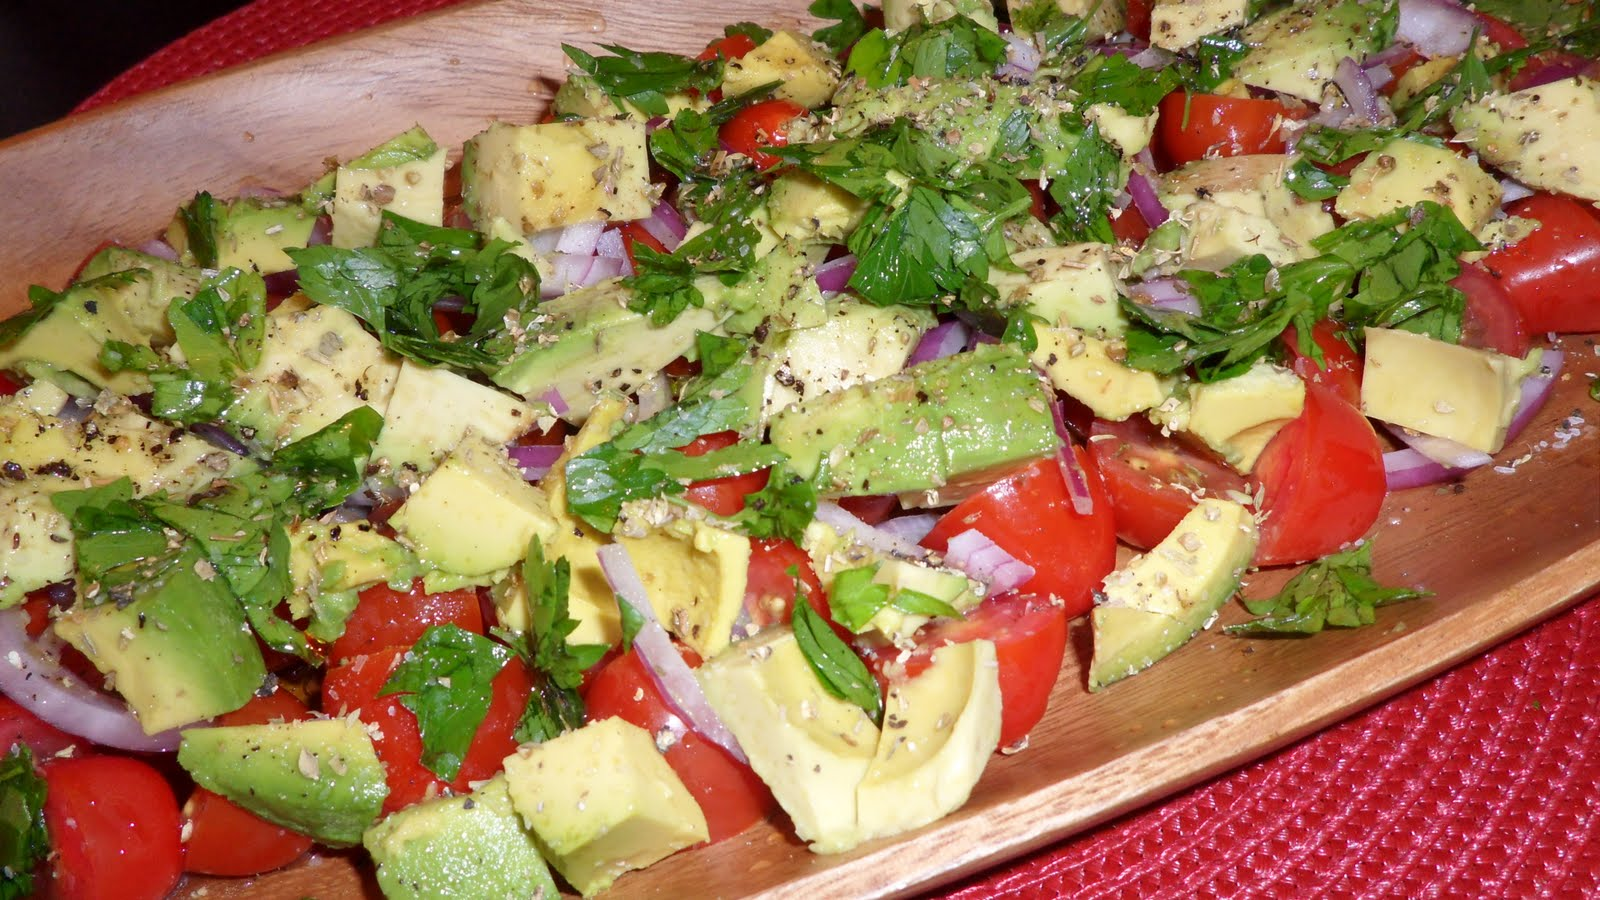 Random Acts of Food: Tomato, Onion & Avocado Salad